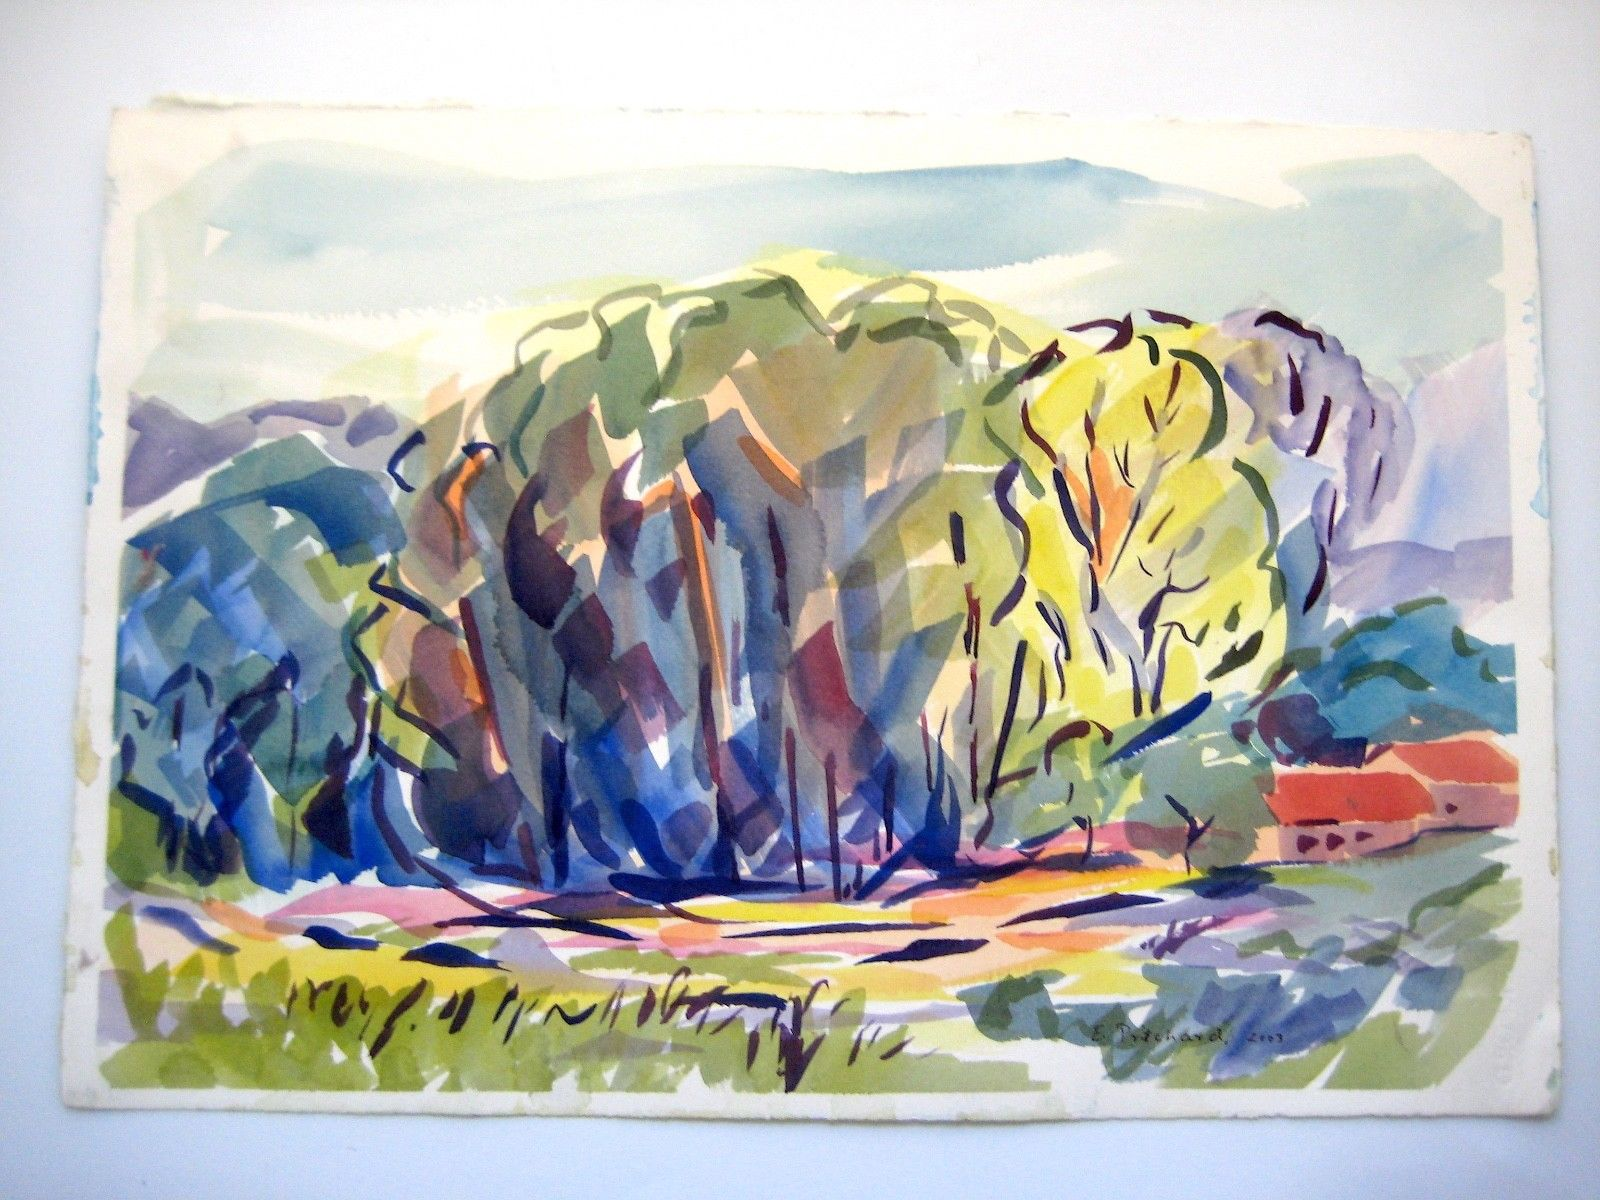 1600x1200 Abstract Watercolor Landscape Painting 22 X 15 By E Pritchard